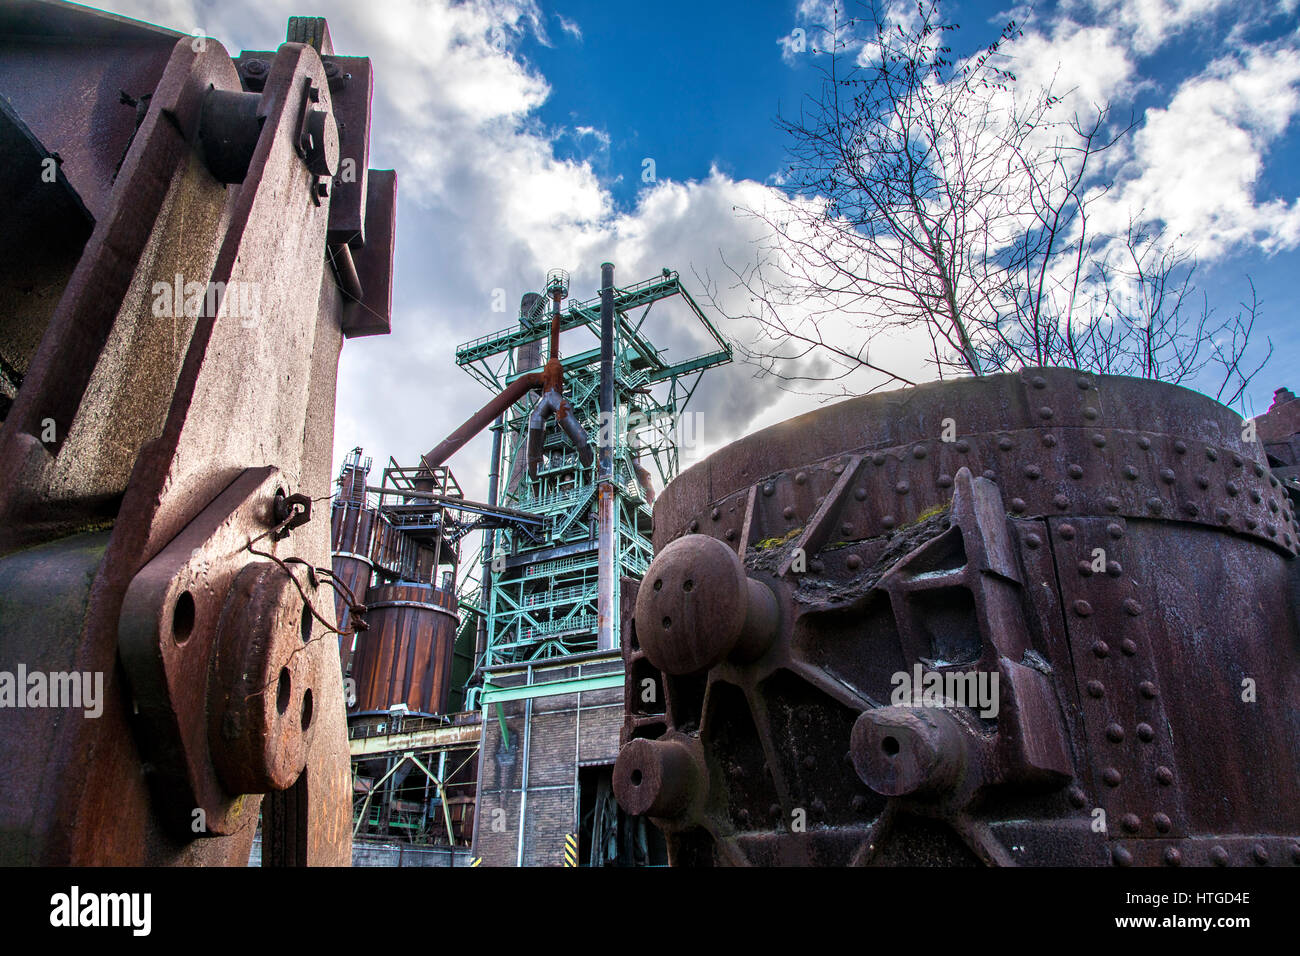 Henrichshütte, former steelworks, industrial museum, Hattingen, Germany, Stock Photo